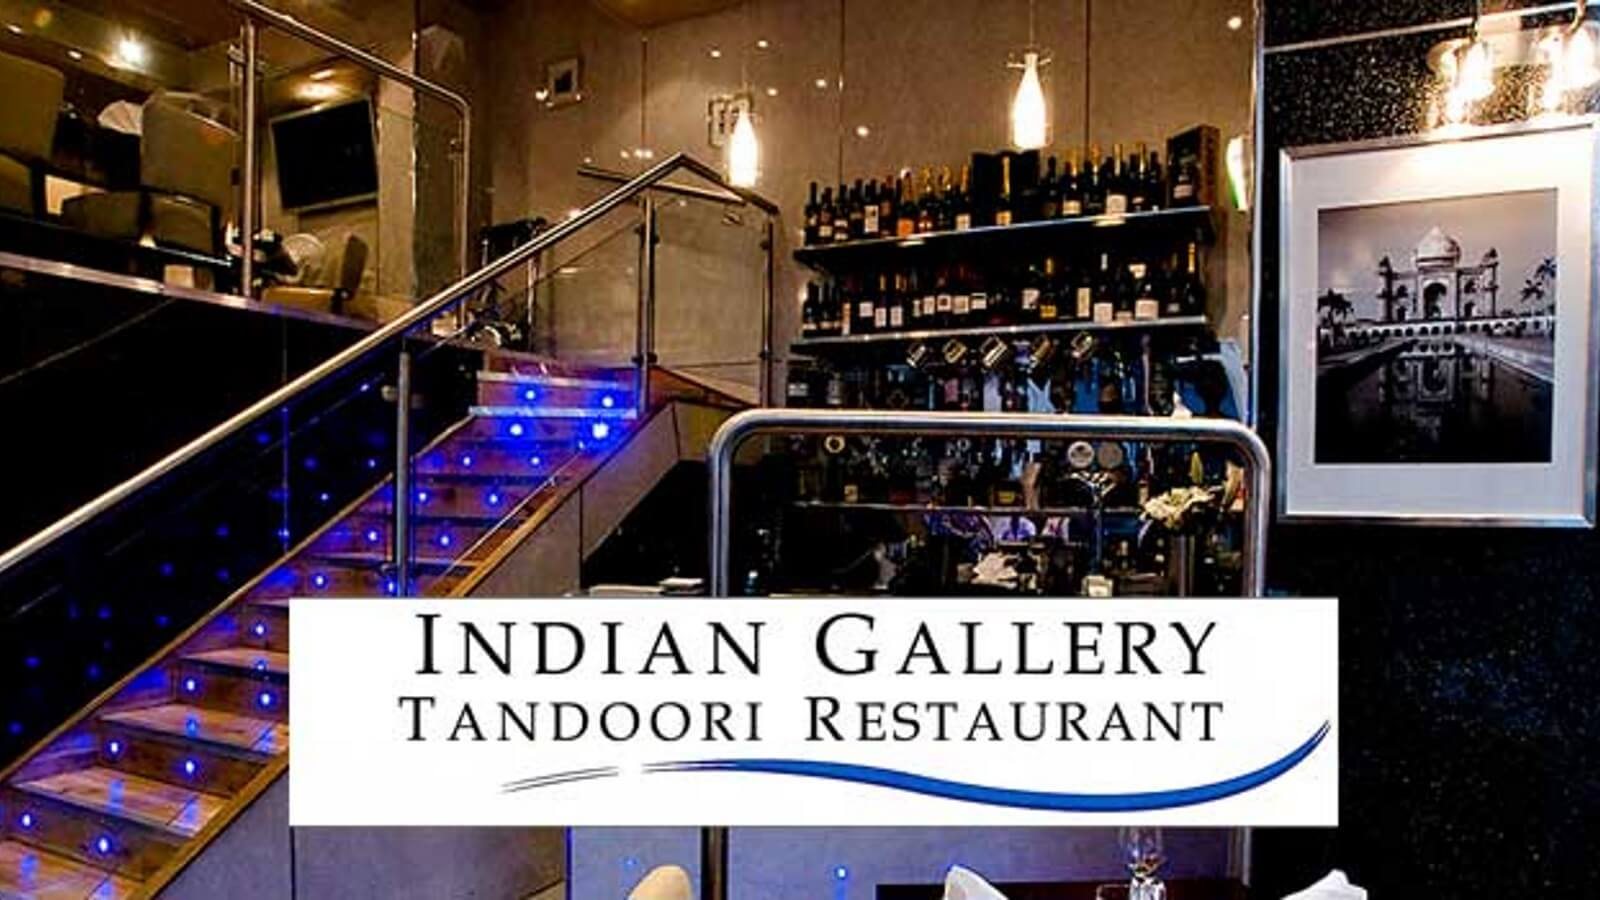 Indian Gallery